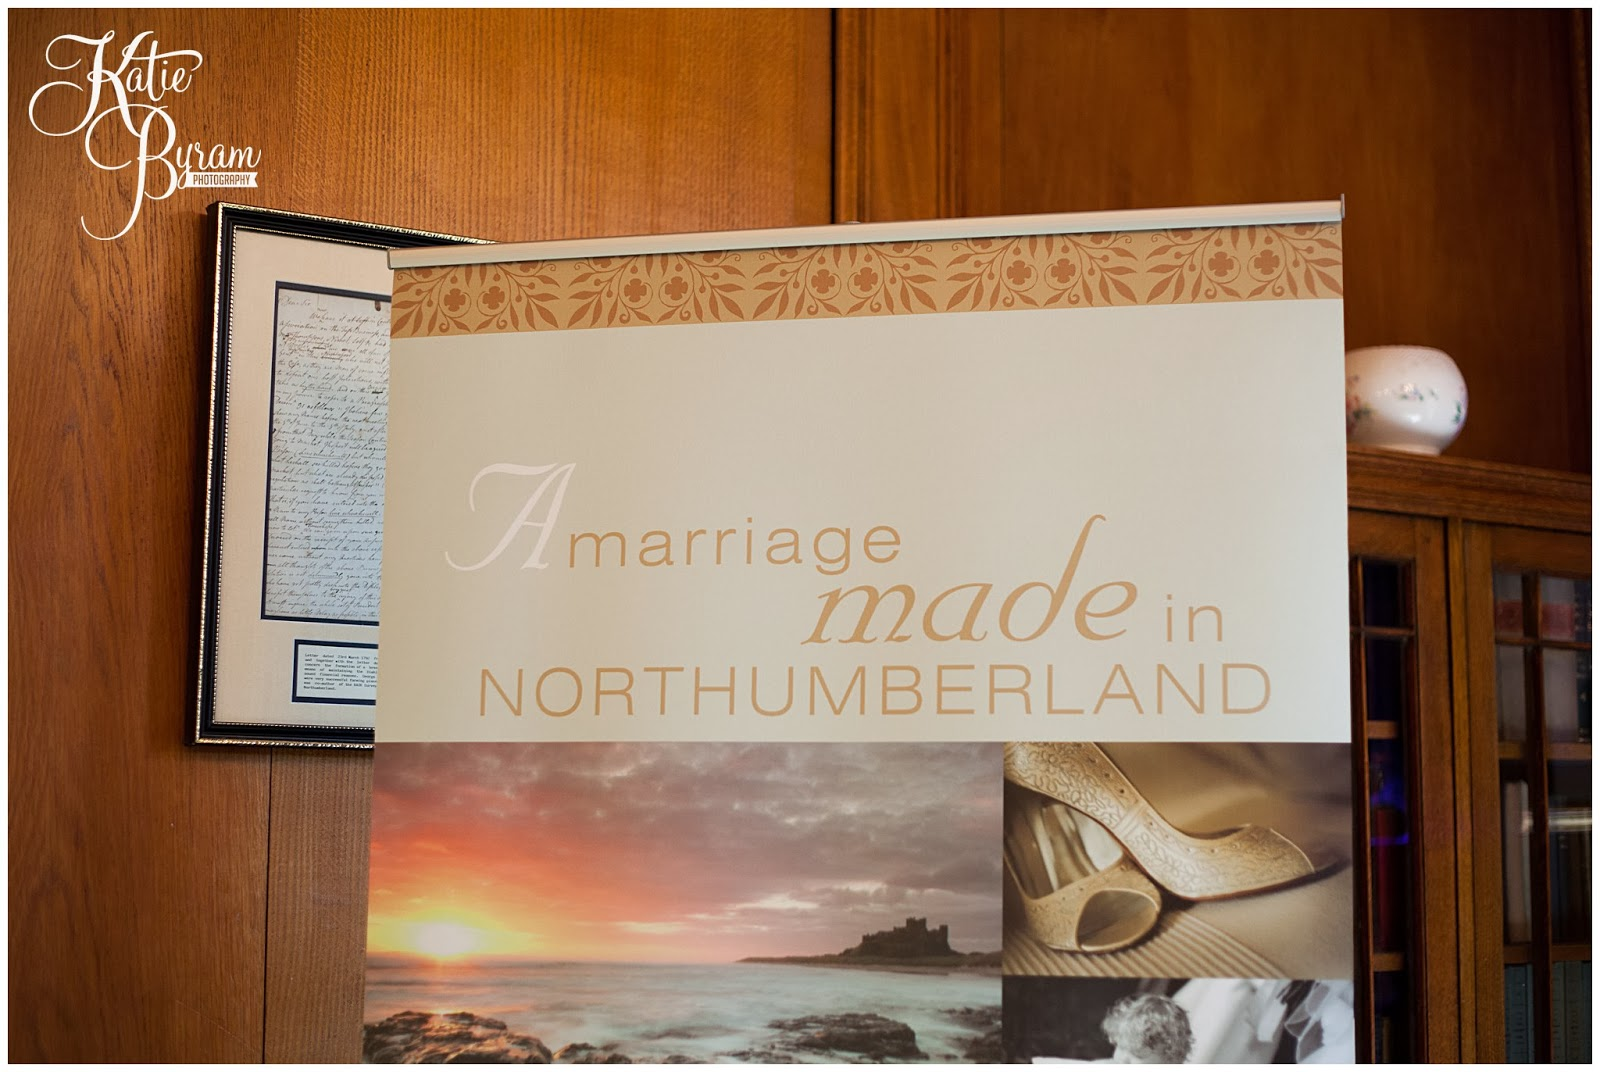 northumberland wedding, kirkley hall wedding fair, kirkley hall wedding, kirkley hall wedding showcase, katie byram photography, by wendy stationery, floral quarter, mark deeks music, northumberland wedding venue,